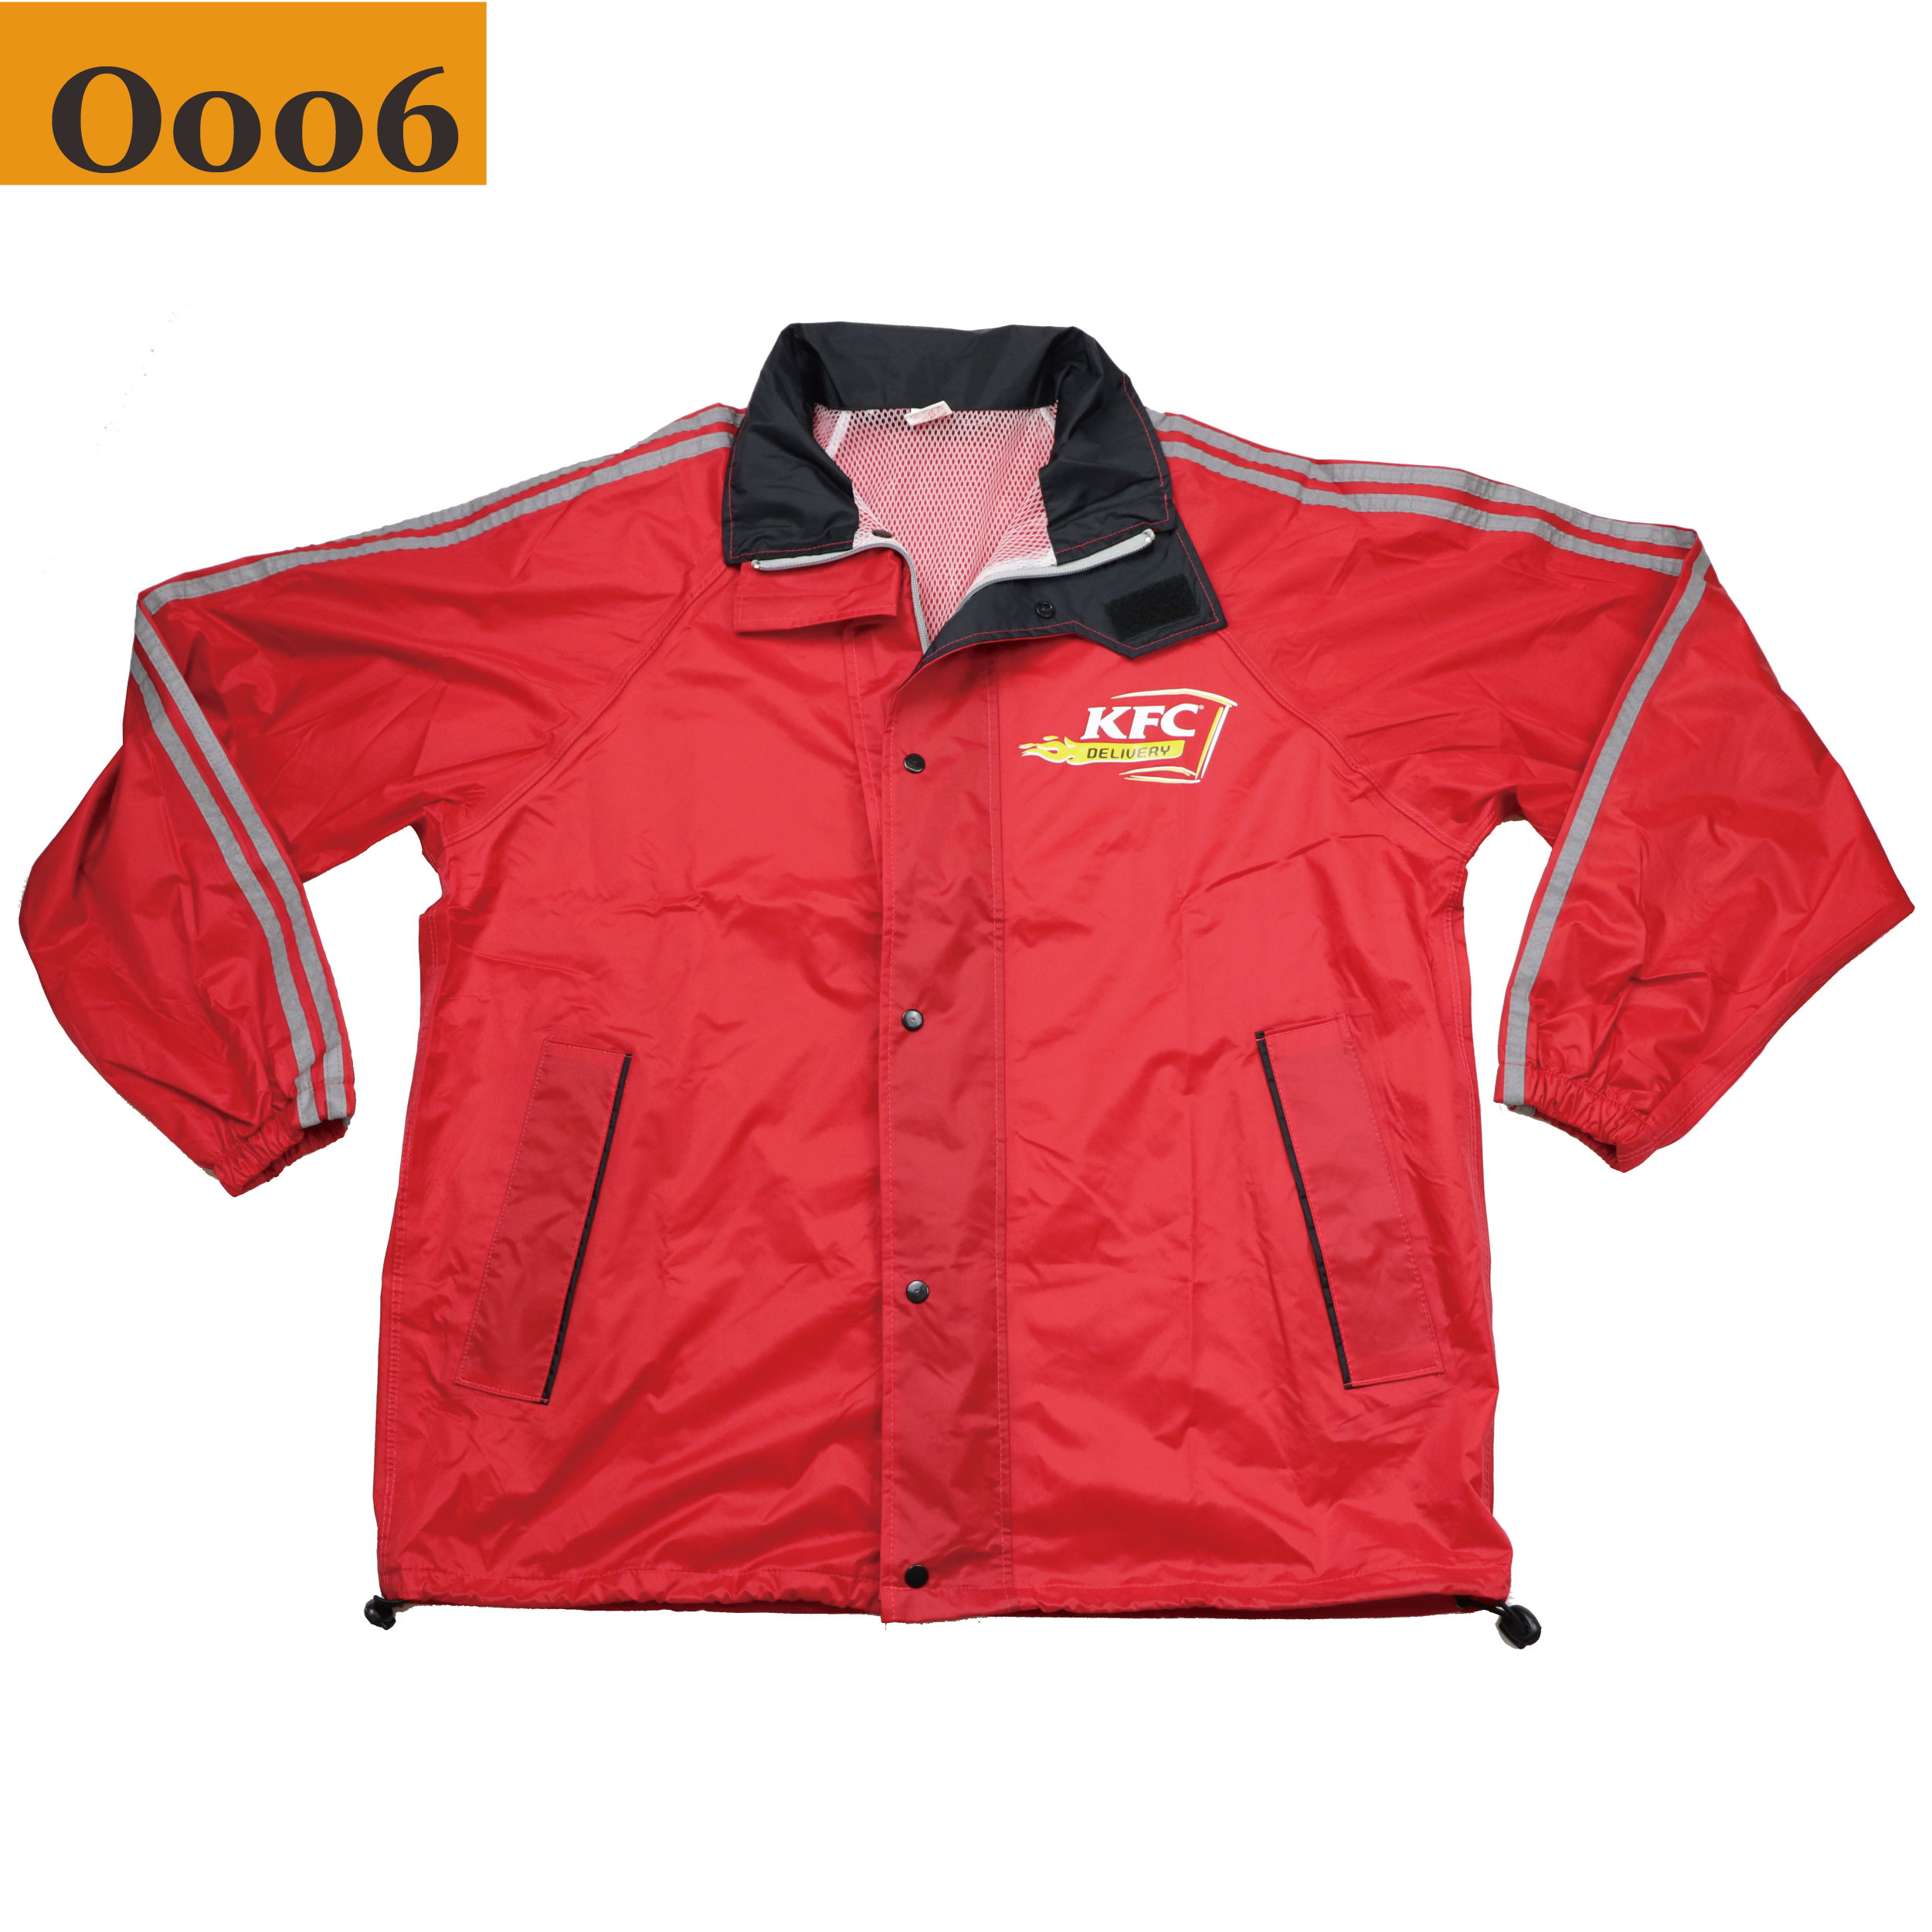 2020 Waterproof Windproof And Quick-drying Outer Reflective Strip Coat